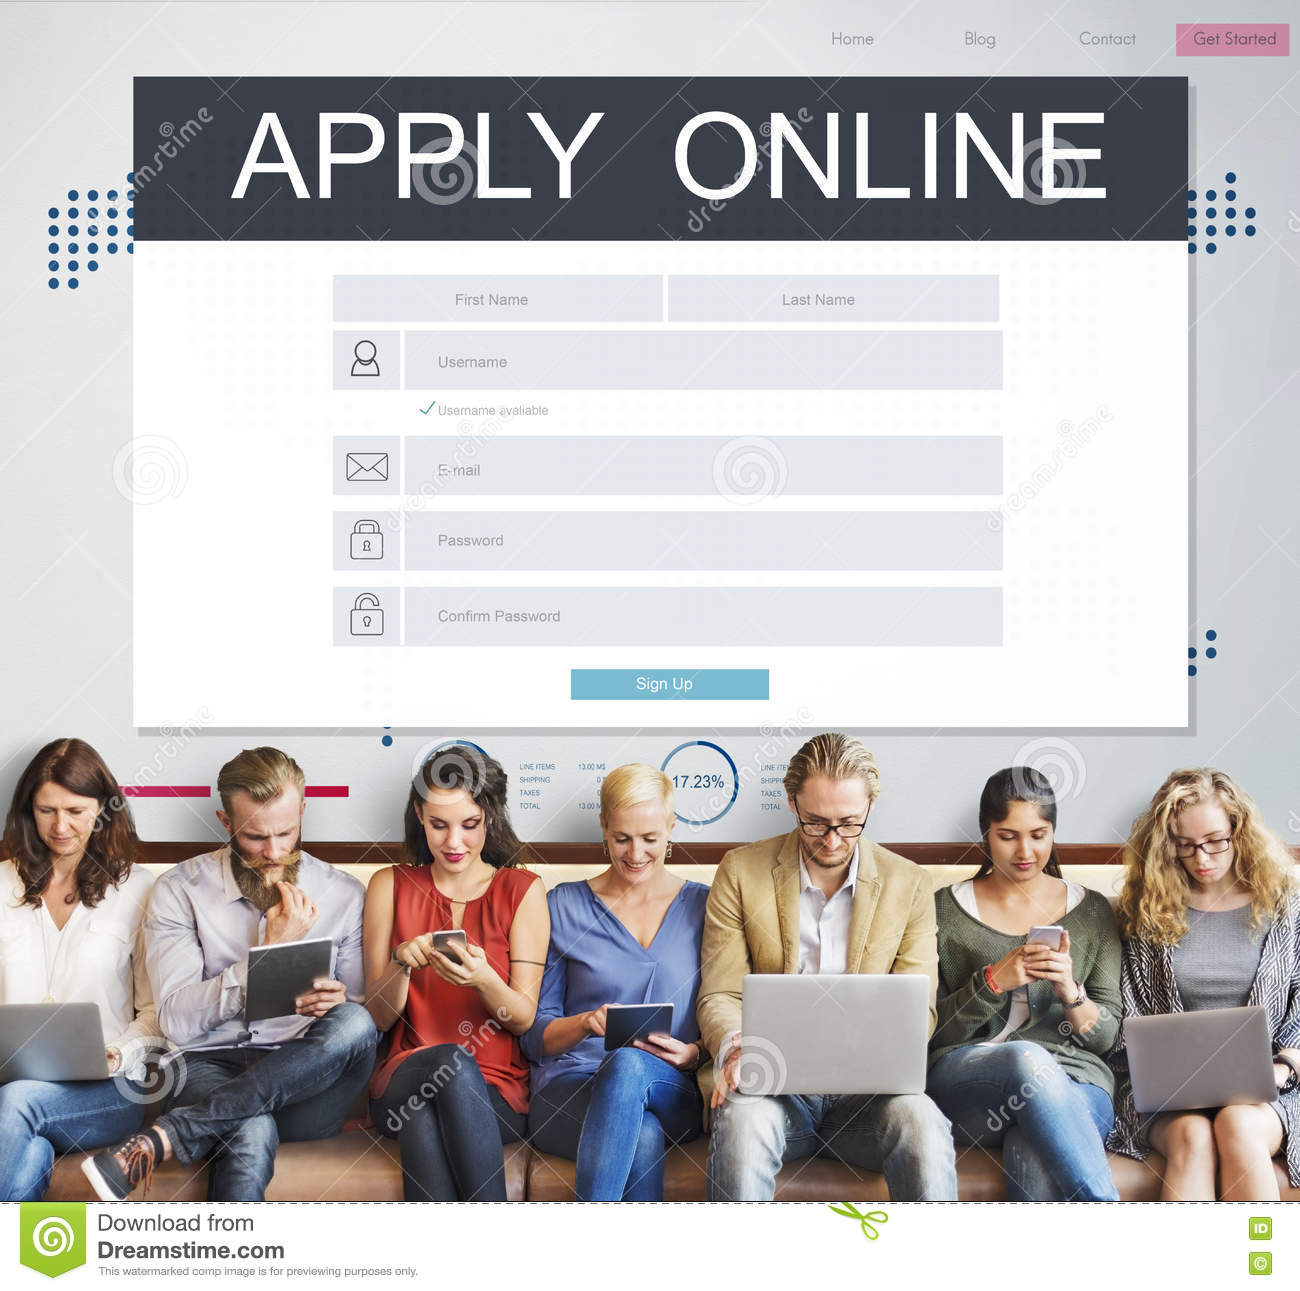 is it better to apply online or in person